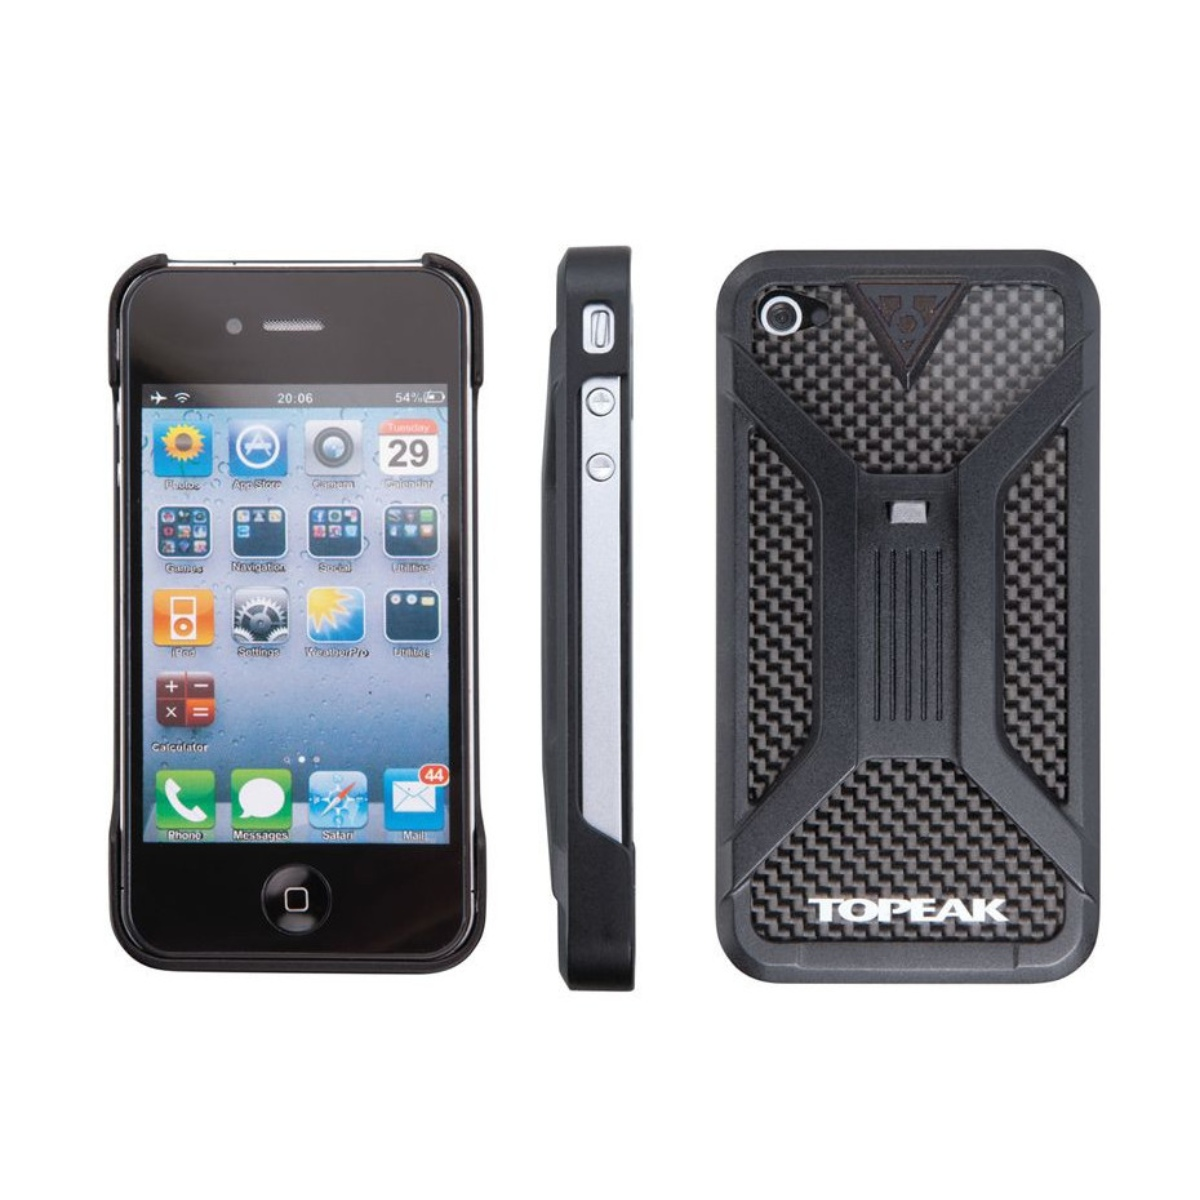 etui-a-telephone-topeak-ridecase-iphone-4-4s